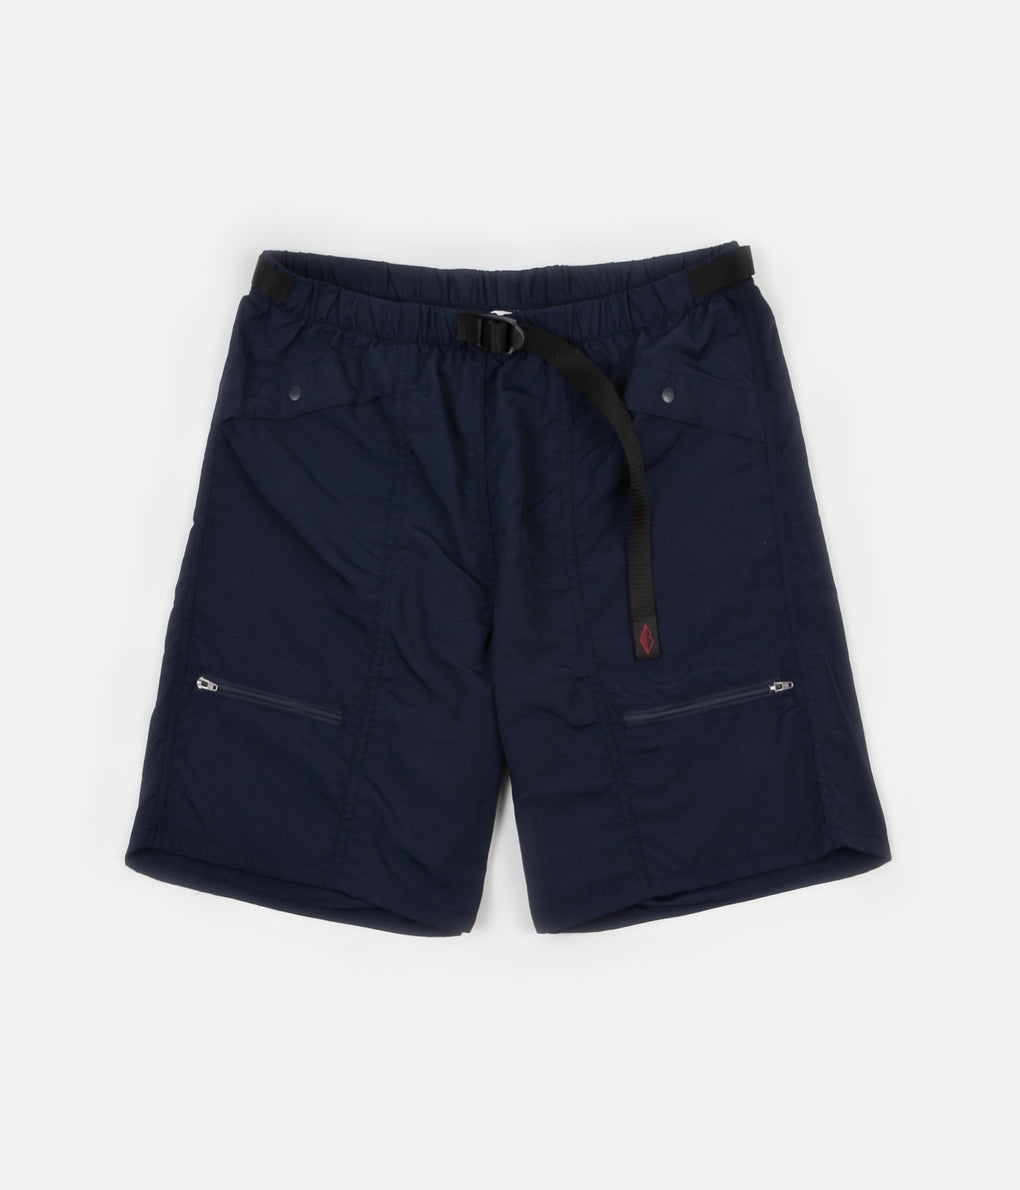 Battenwear Camp Shorts - Navy